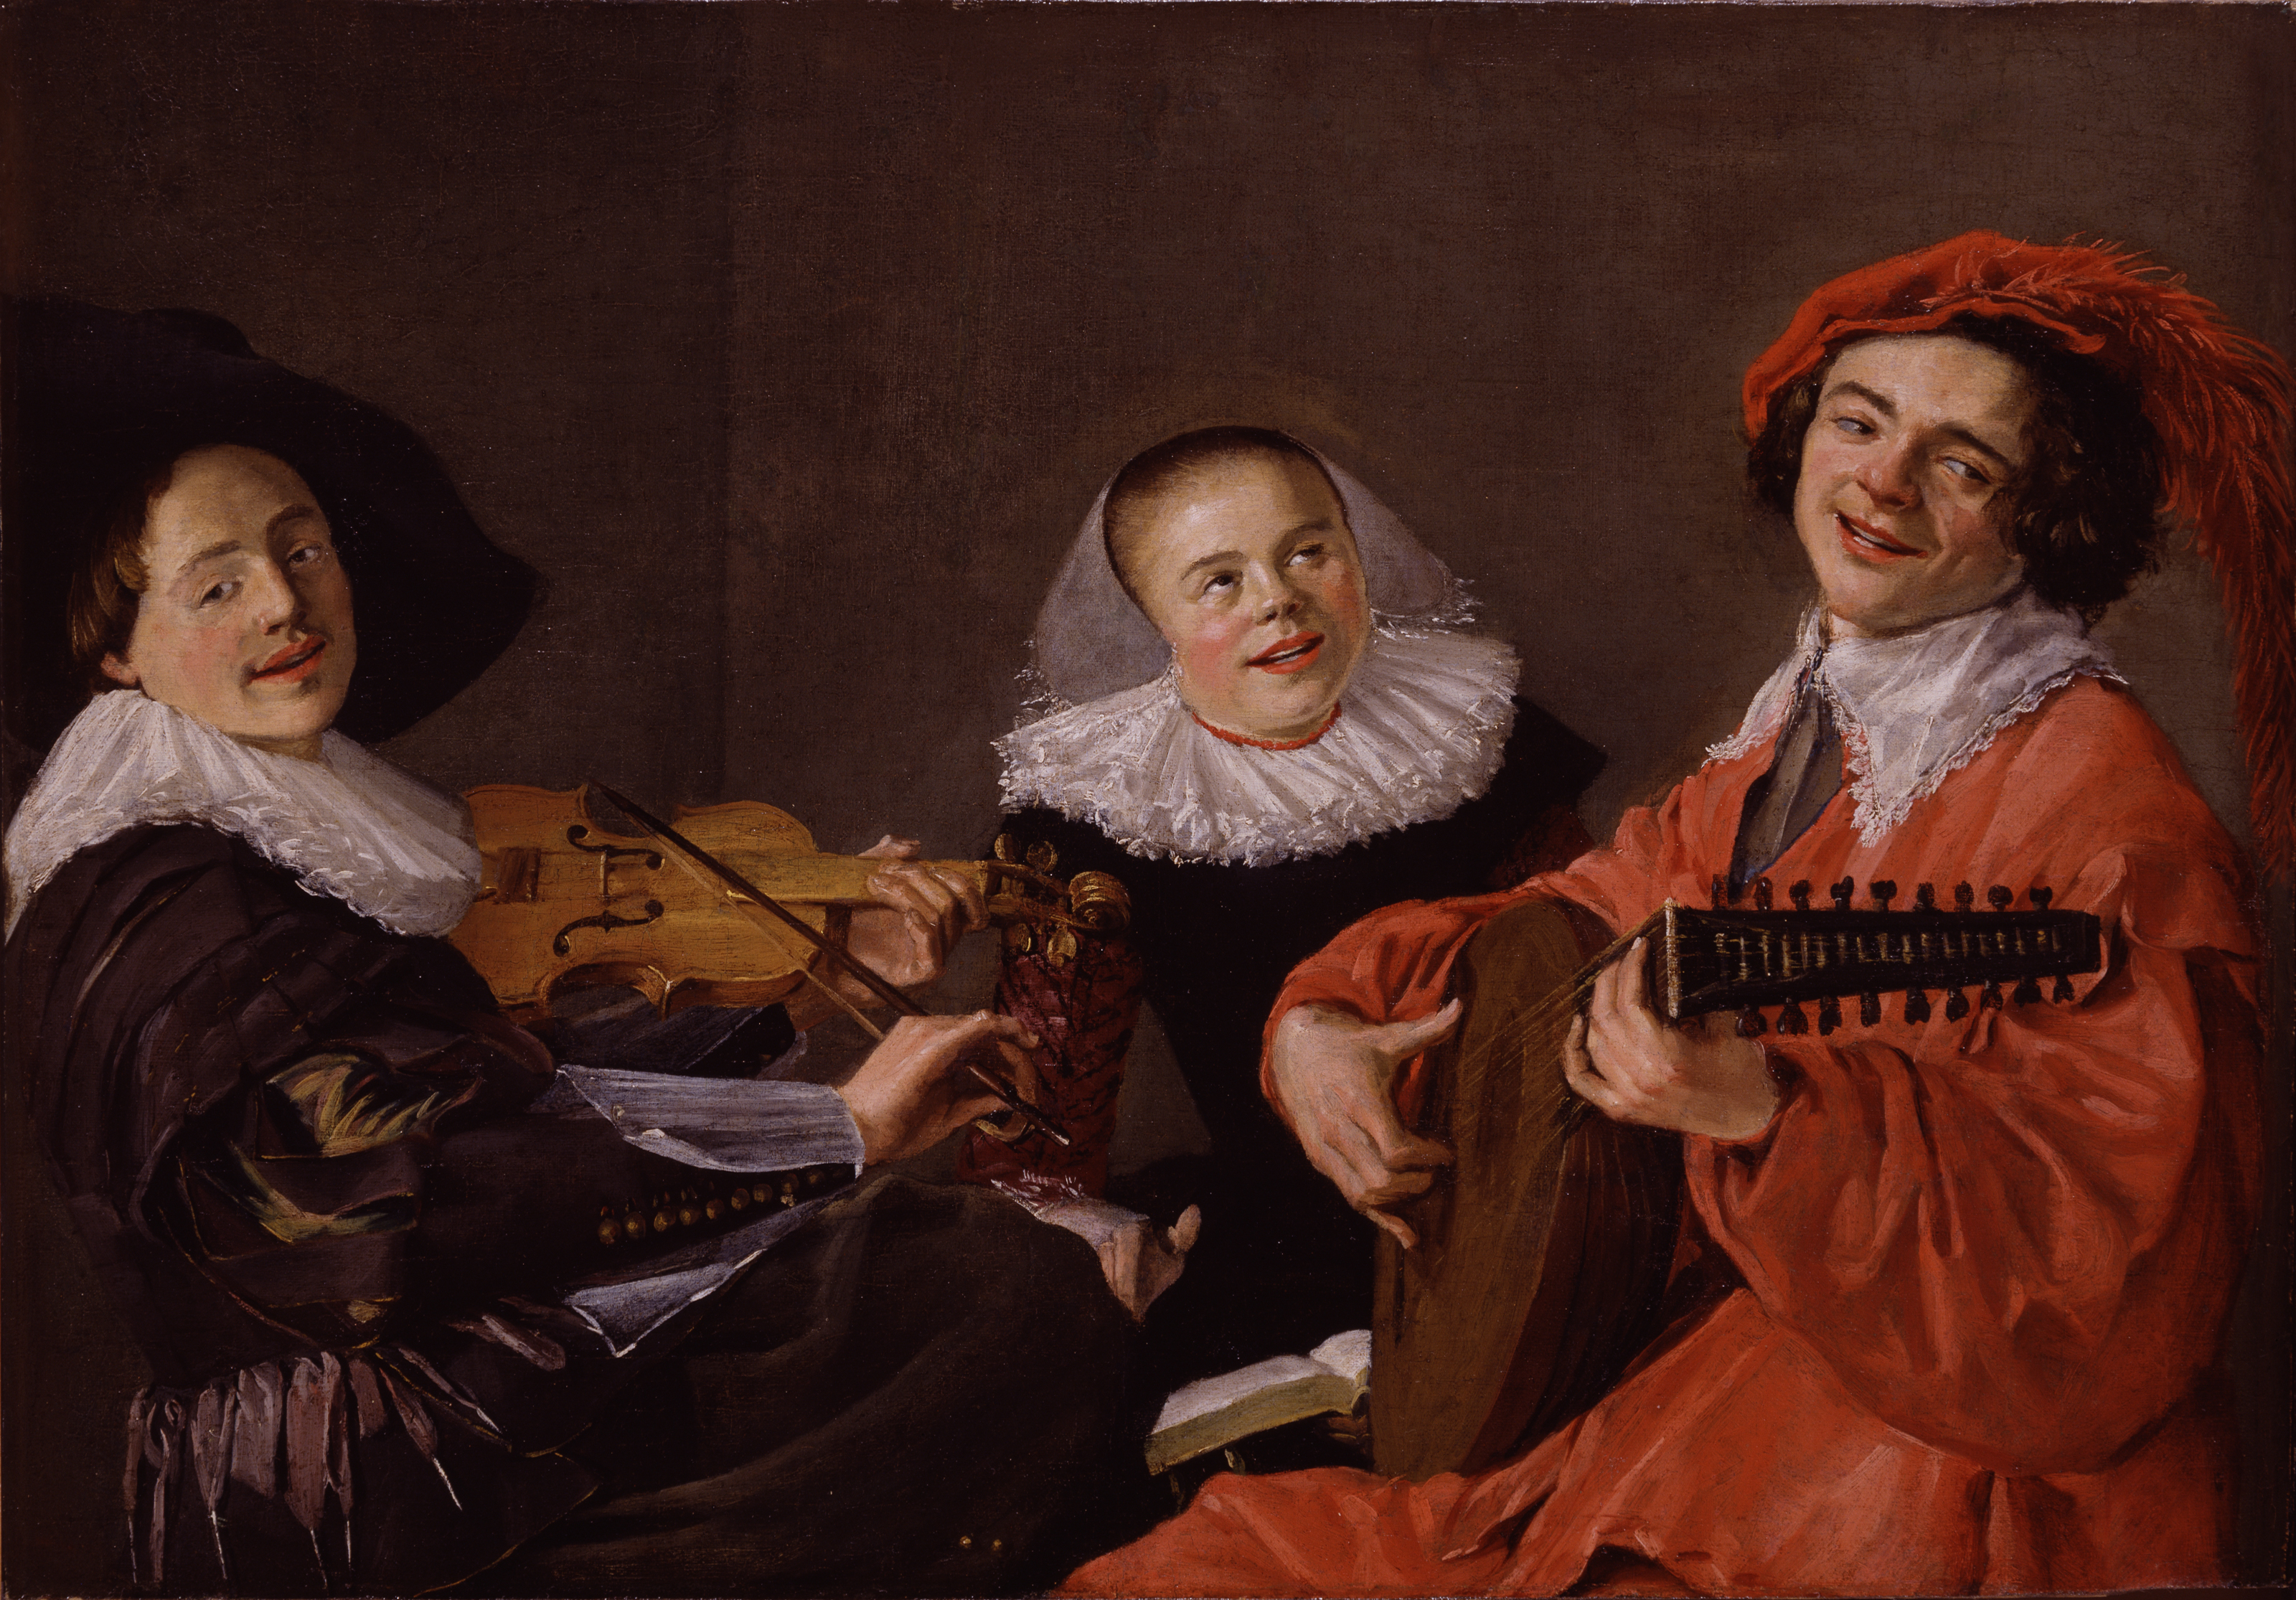 File:Judith Leyster The Concert jpg - Wikimedia Commons